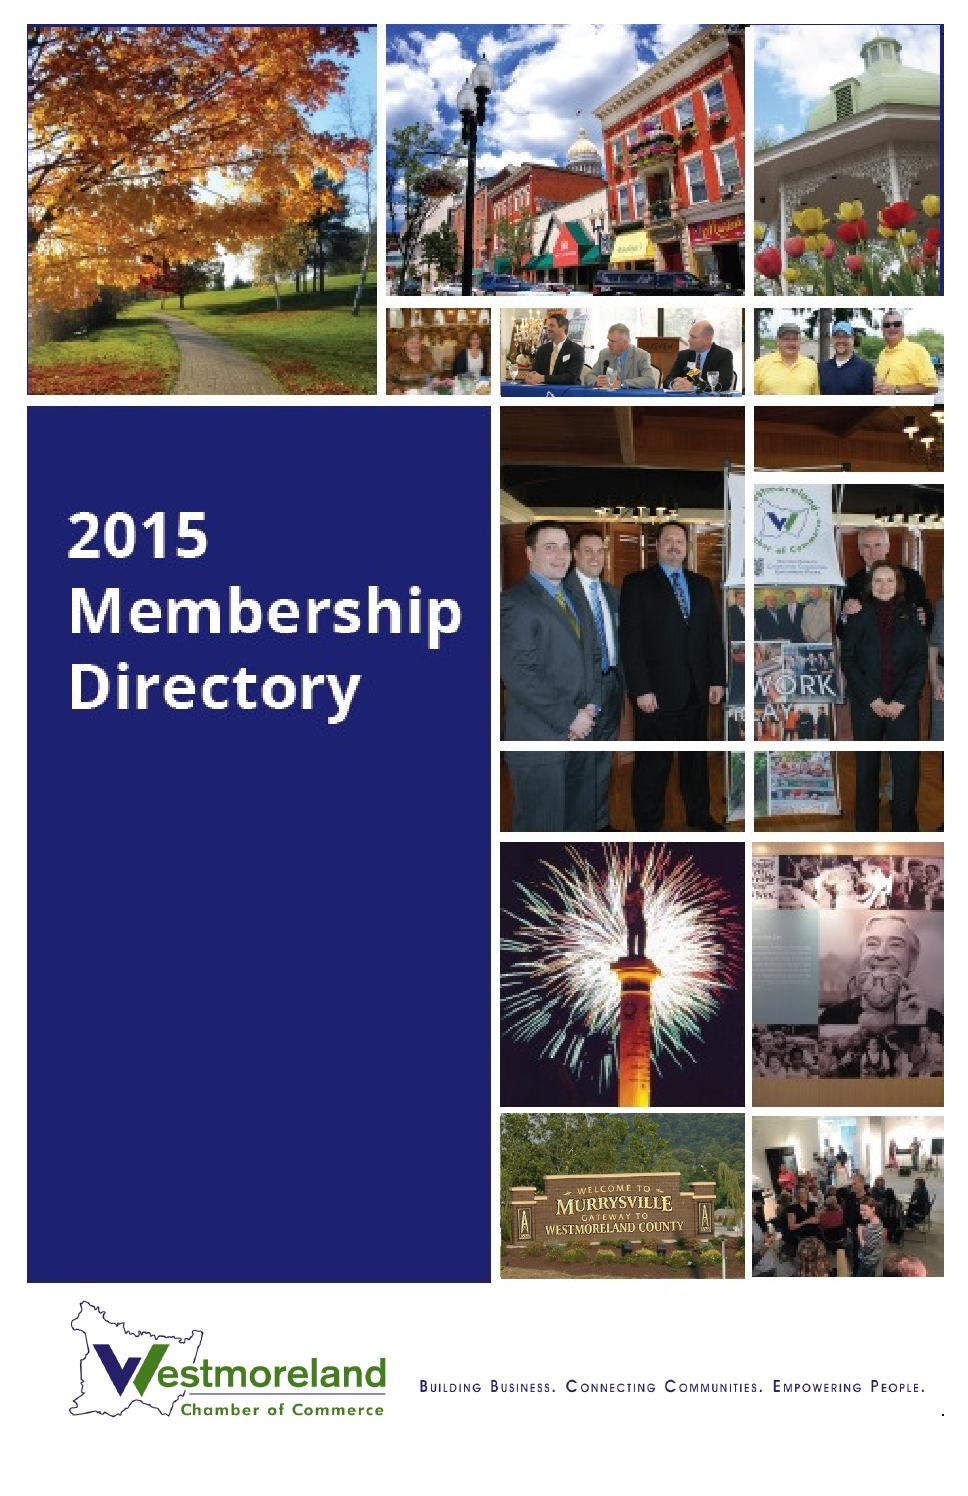 Membership Directory 2015 By Westmoreland County Chamber Of Commerce